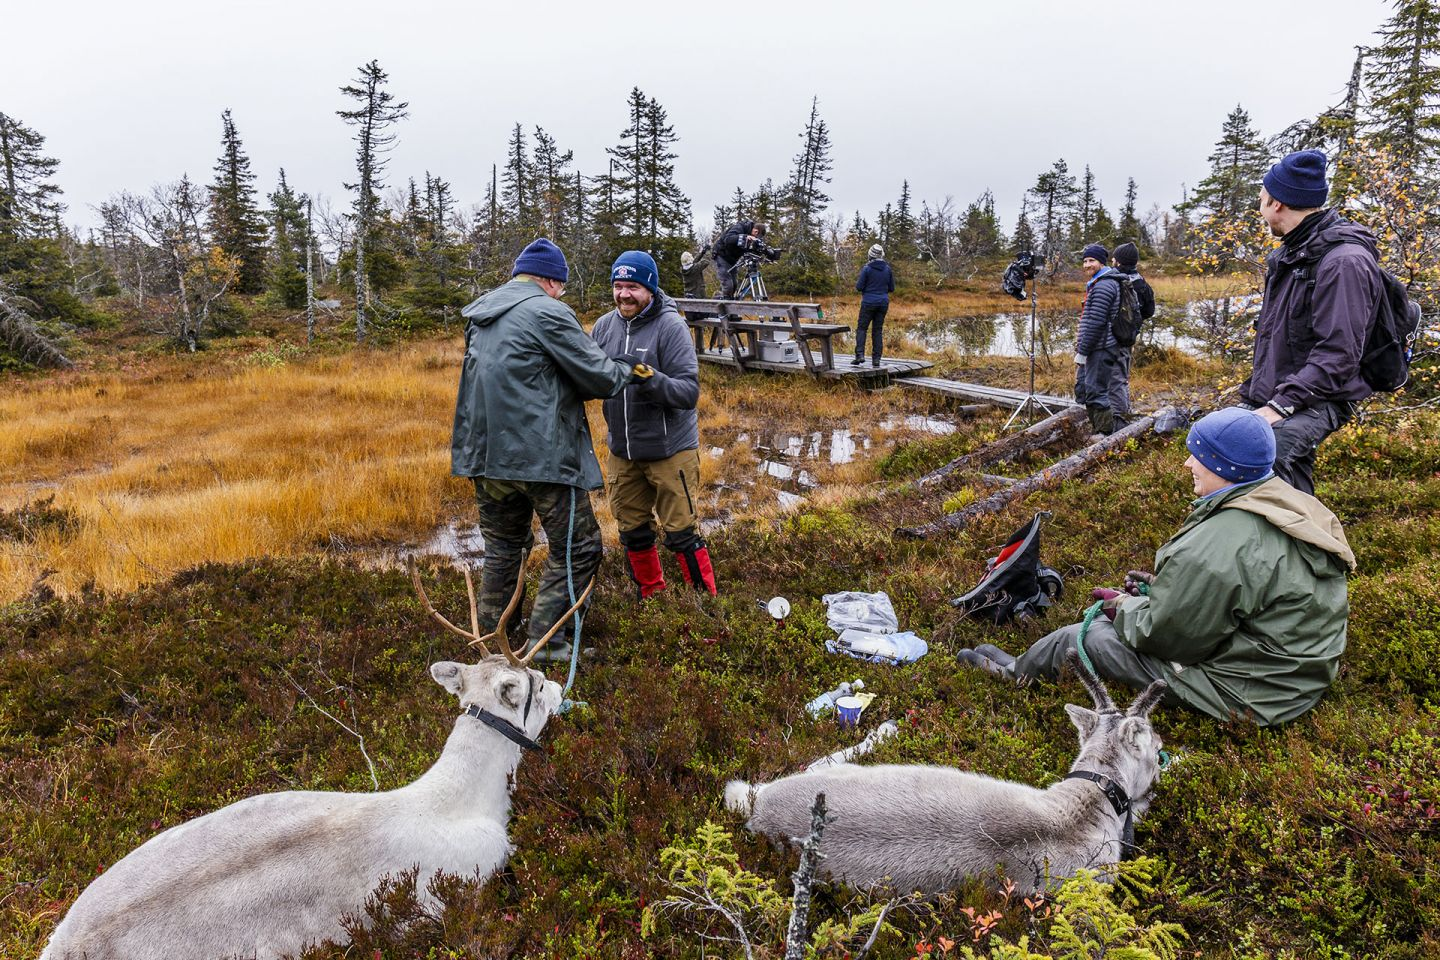 A Reindeer's Journey crew in Lapland